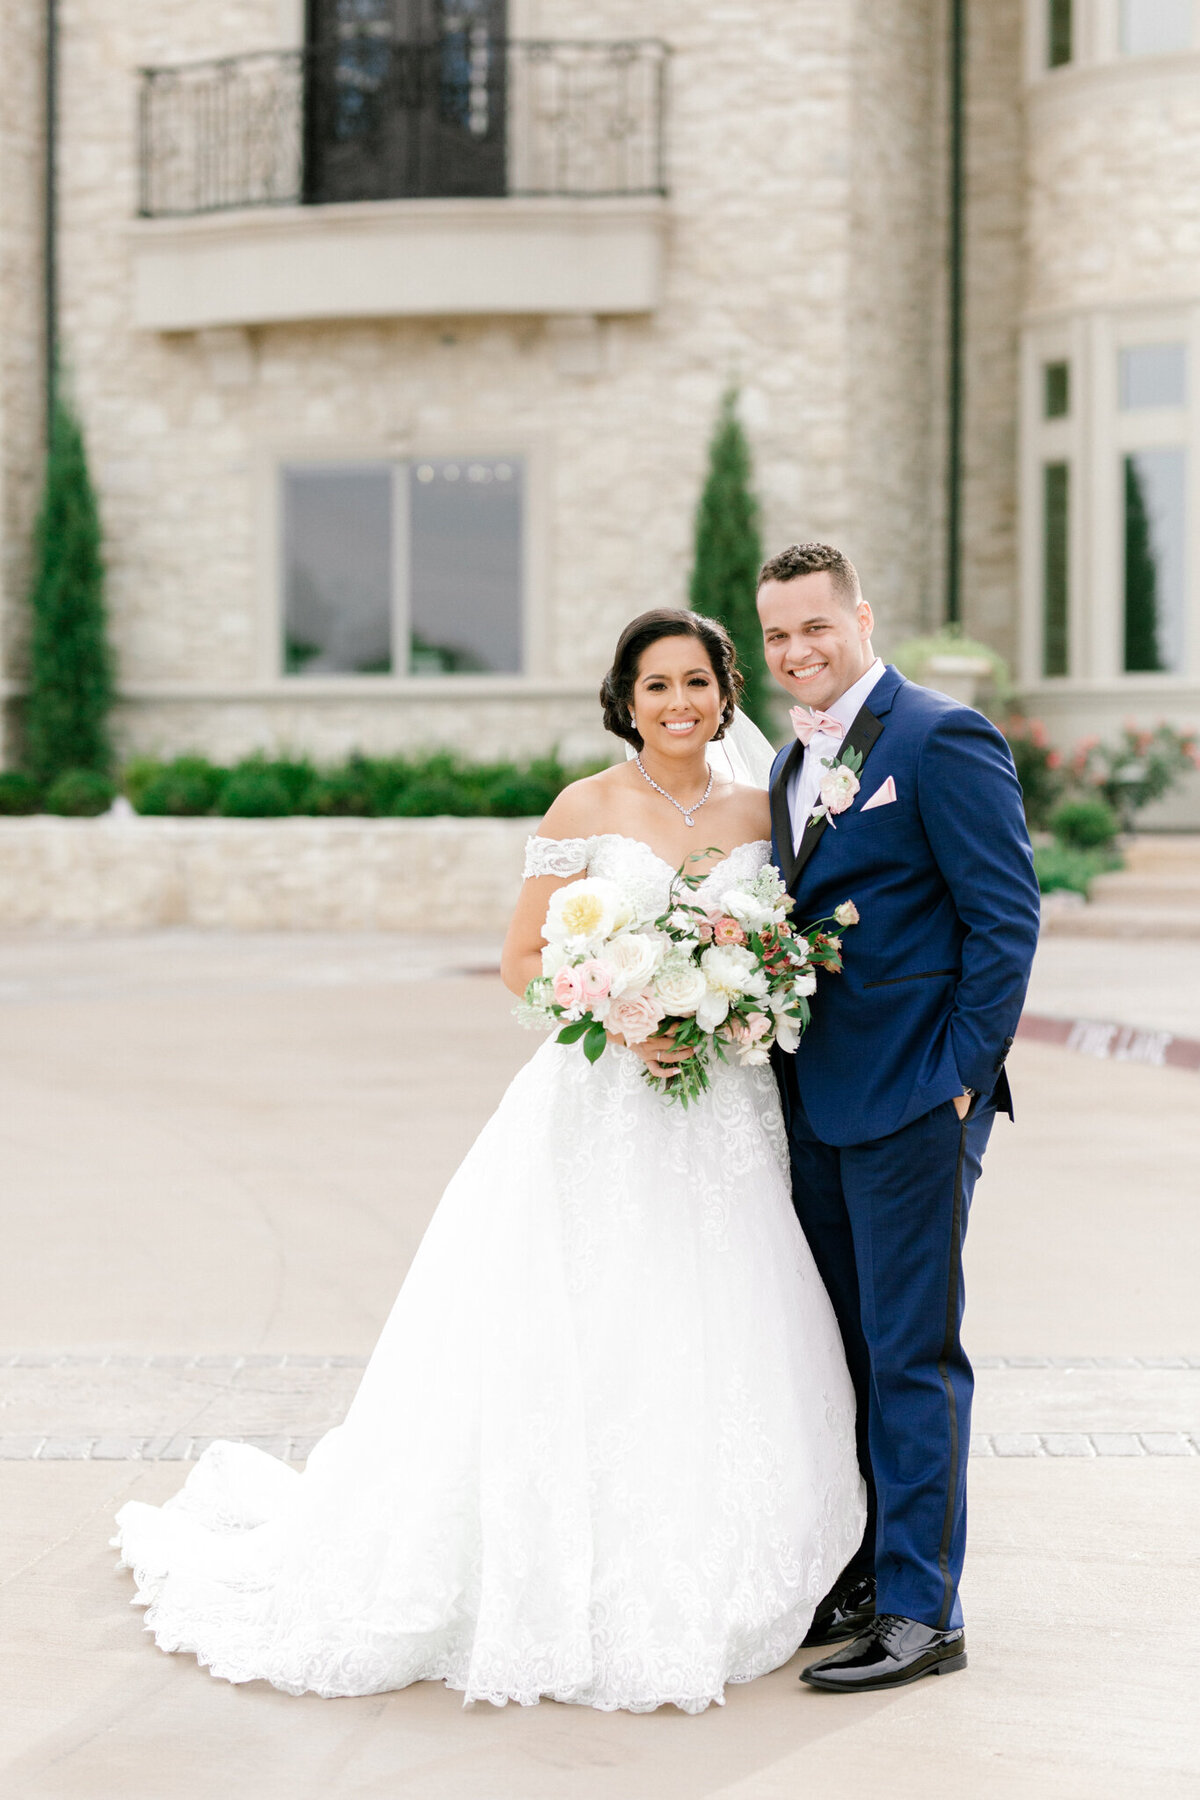 Jasmine & Josh Wedding at Knotting Hill Place | Dallas DFW Wedding Photographer | Sami Kathryn Photography-93